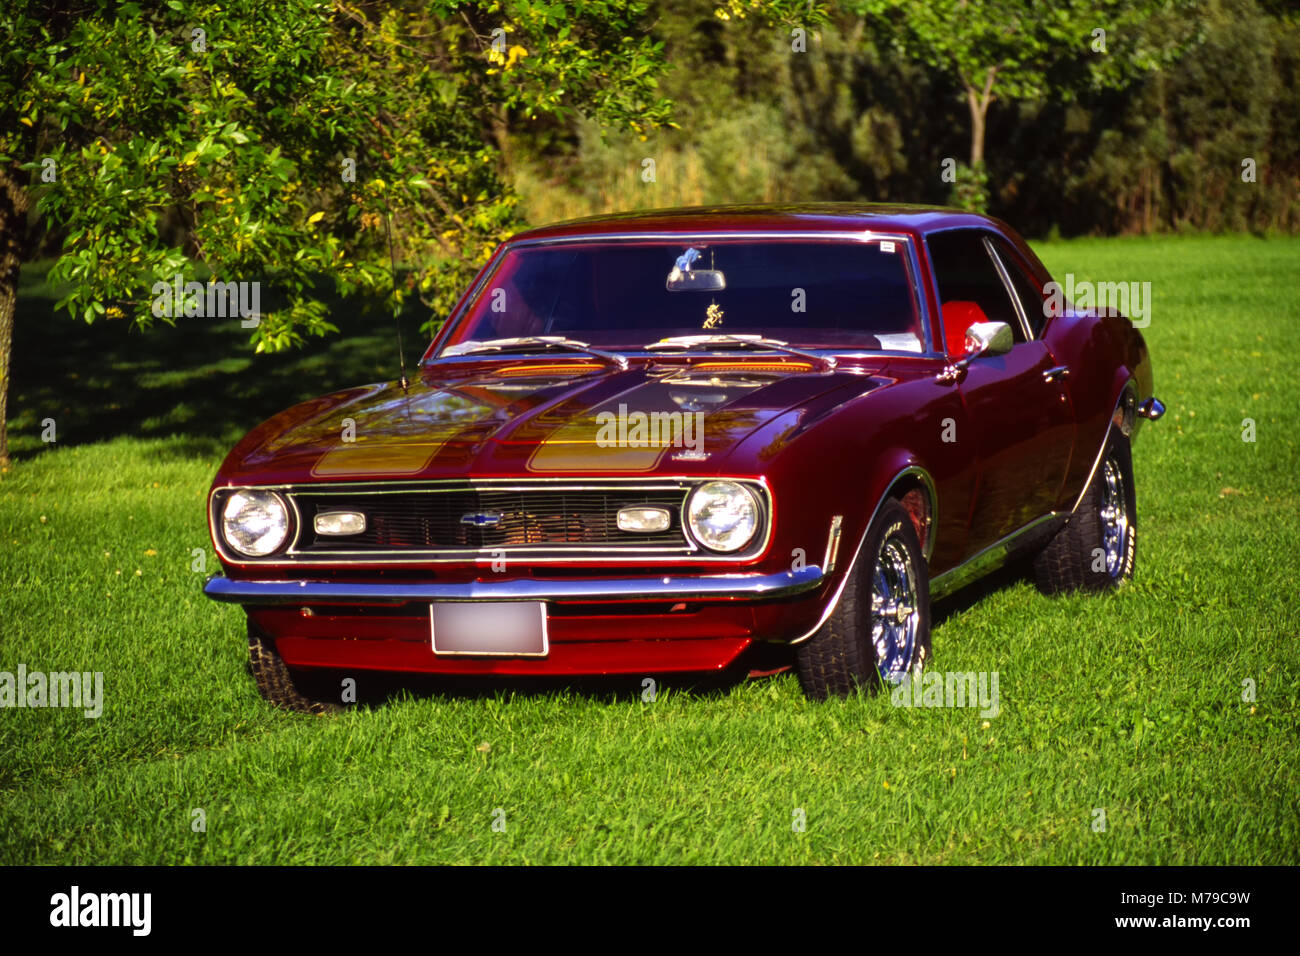 1969 Camaro Photos Images Alamy Ford Crown Victoria Ltd Sur Lherbe Photo Stock